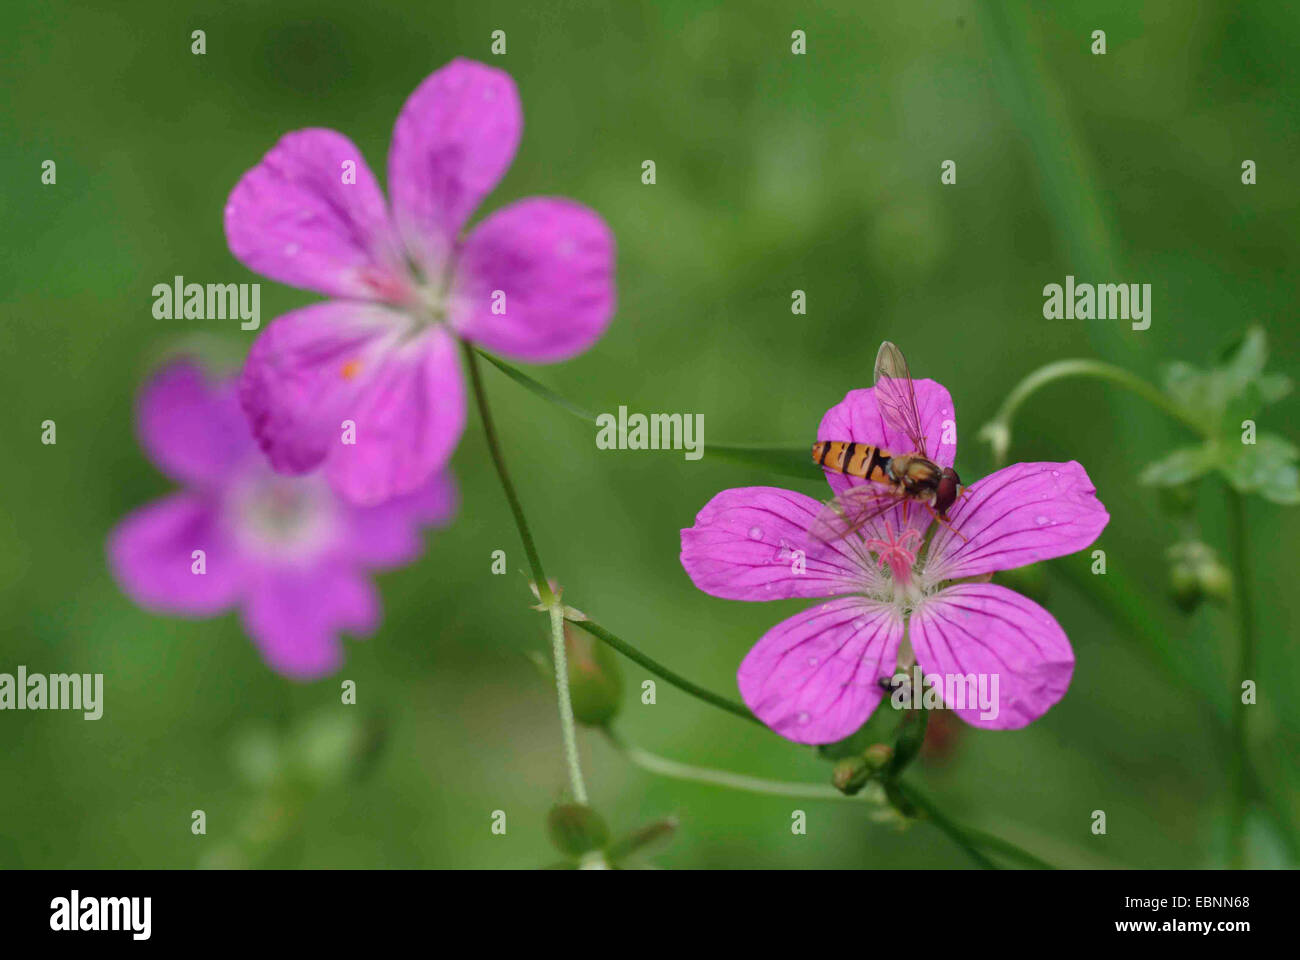 marsh cranesbill (Geranium palustre), flowers with hoverfly, Germany - Stock Image